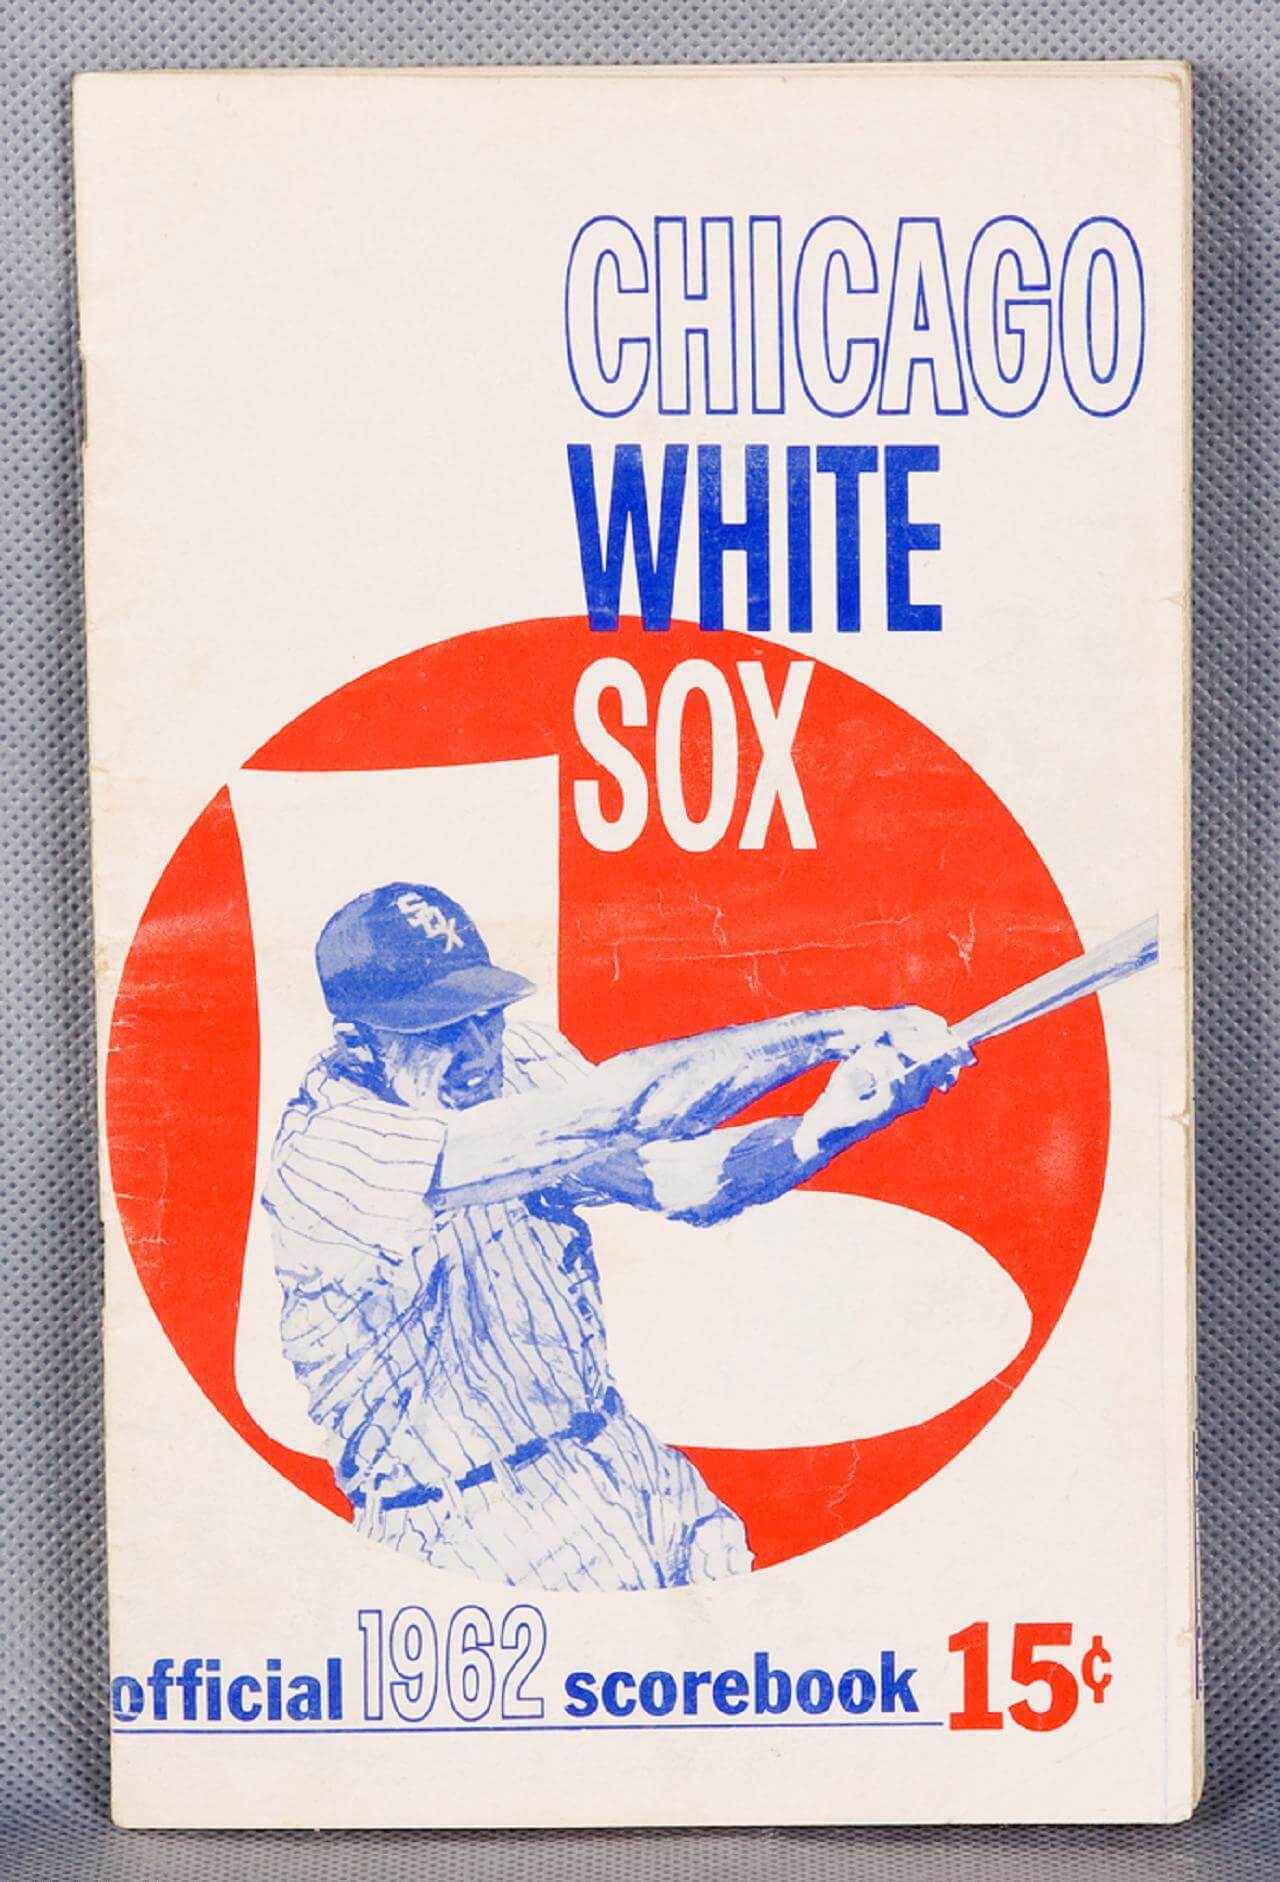 1962 Chicago White Sox Official Scorebook56853_01_lg